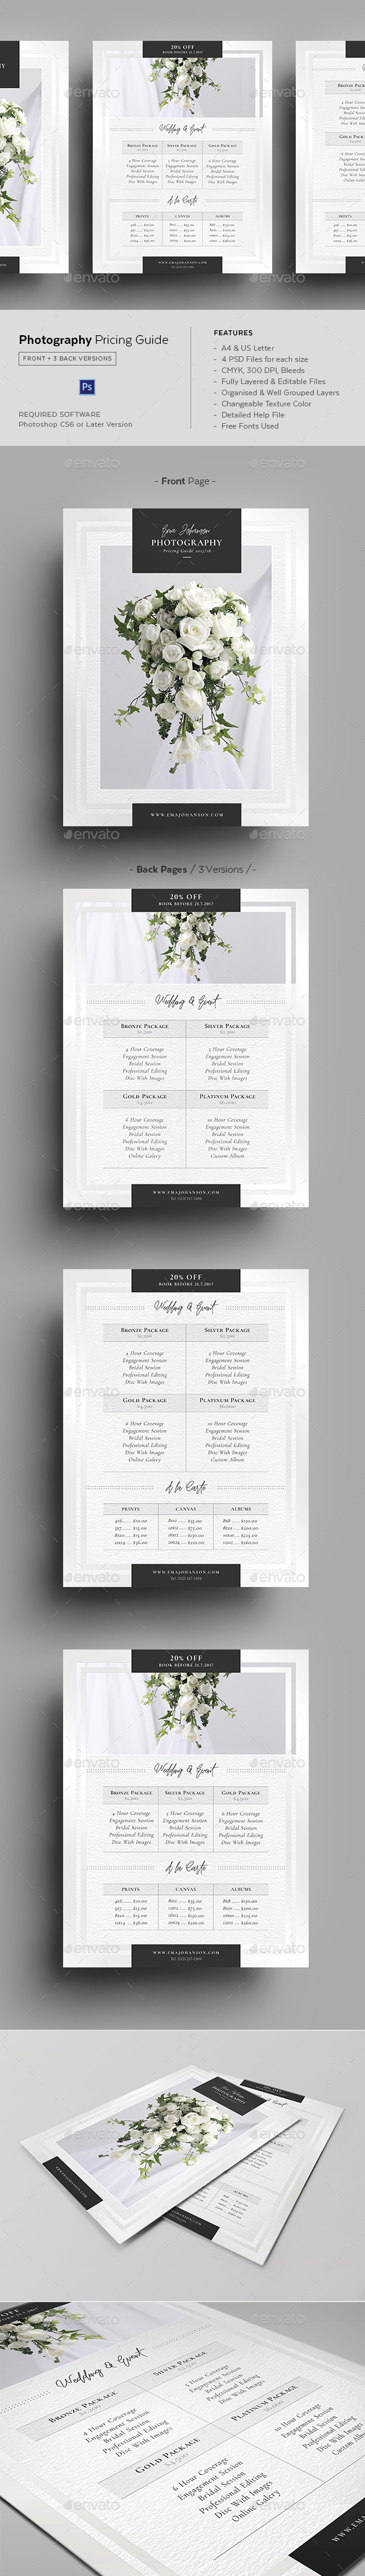 Photography Pricing Guide Template - Commerce Flyers